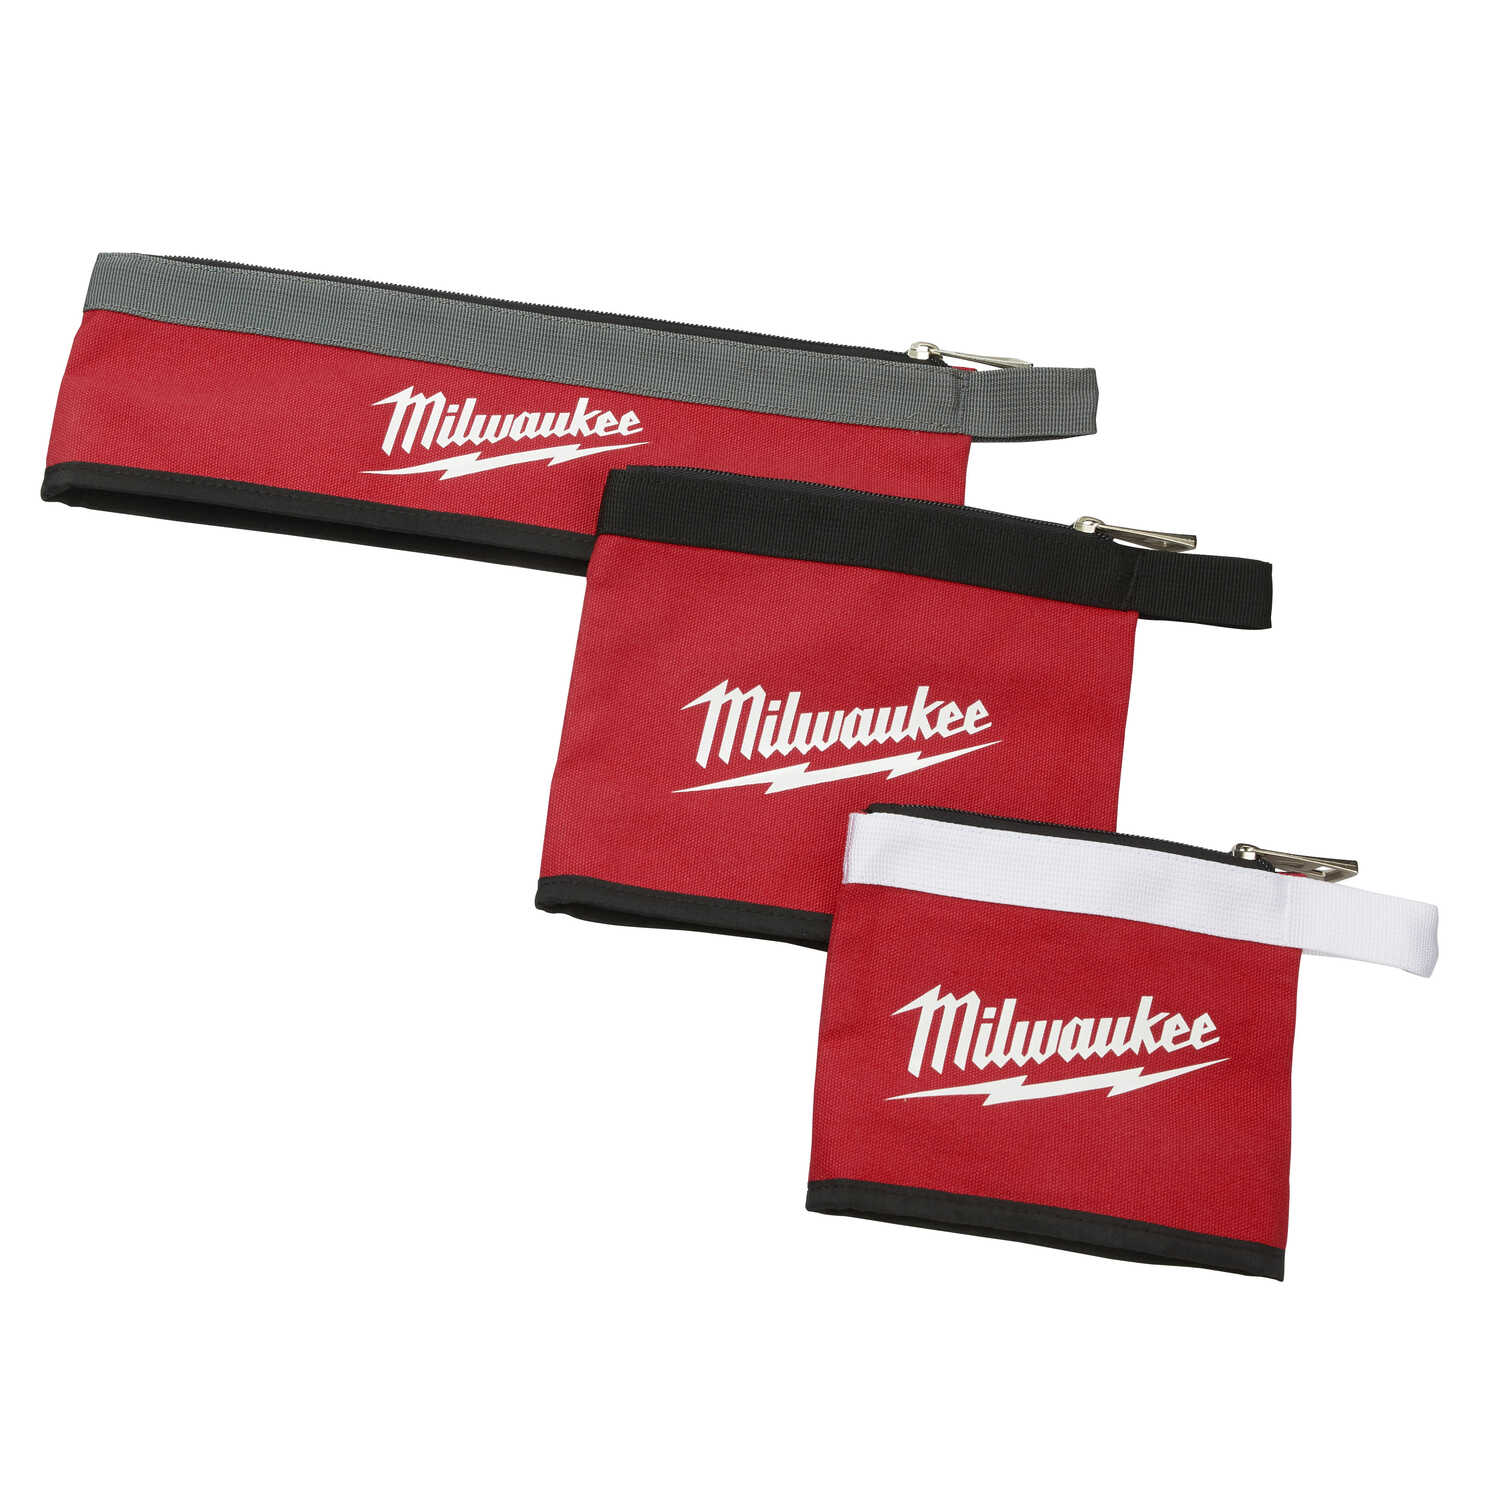 Milwaukee  0.25 in. W x 8 in. H Canvas  Multi-Size  Zippered Bag Assortment  1 pocket Red  3 pc.